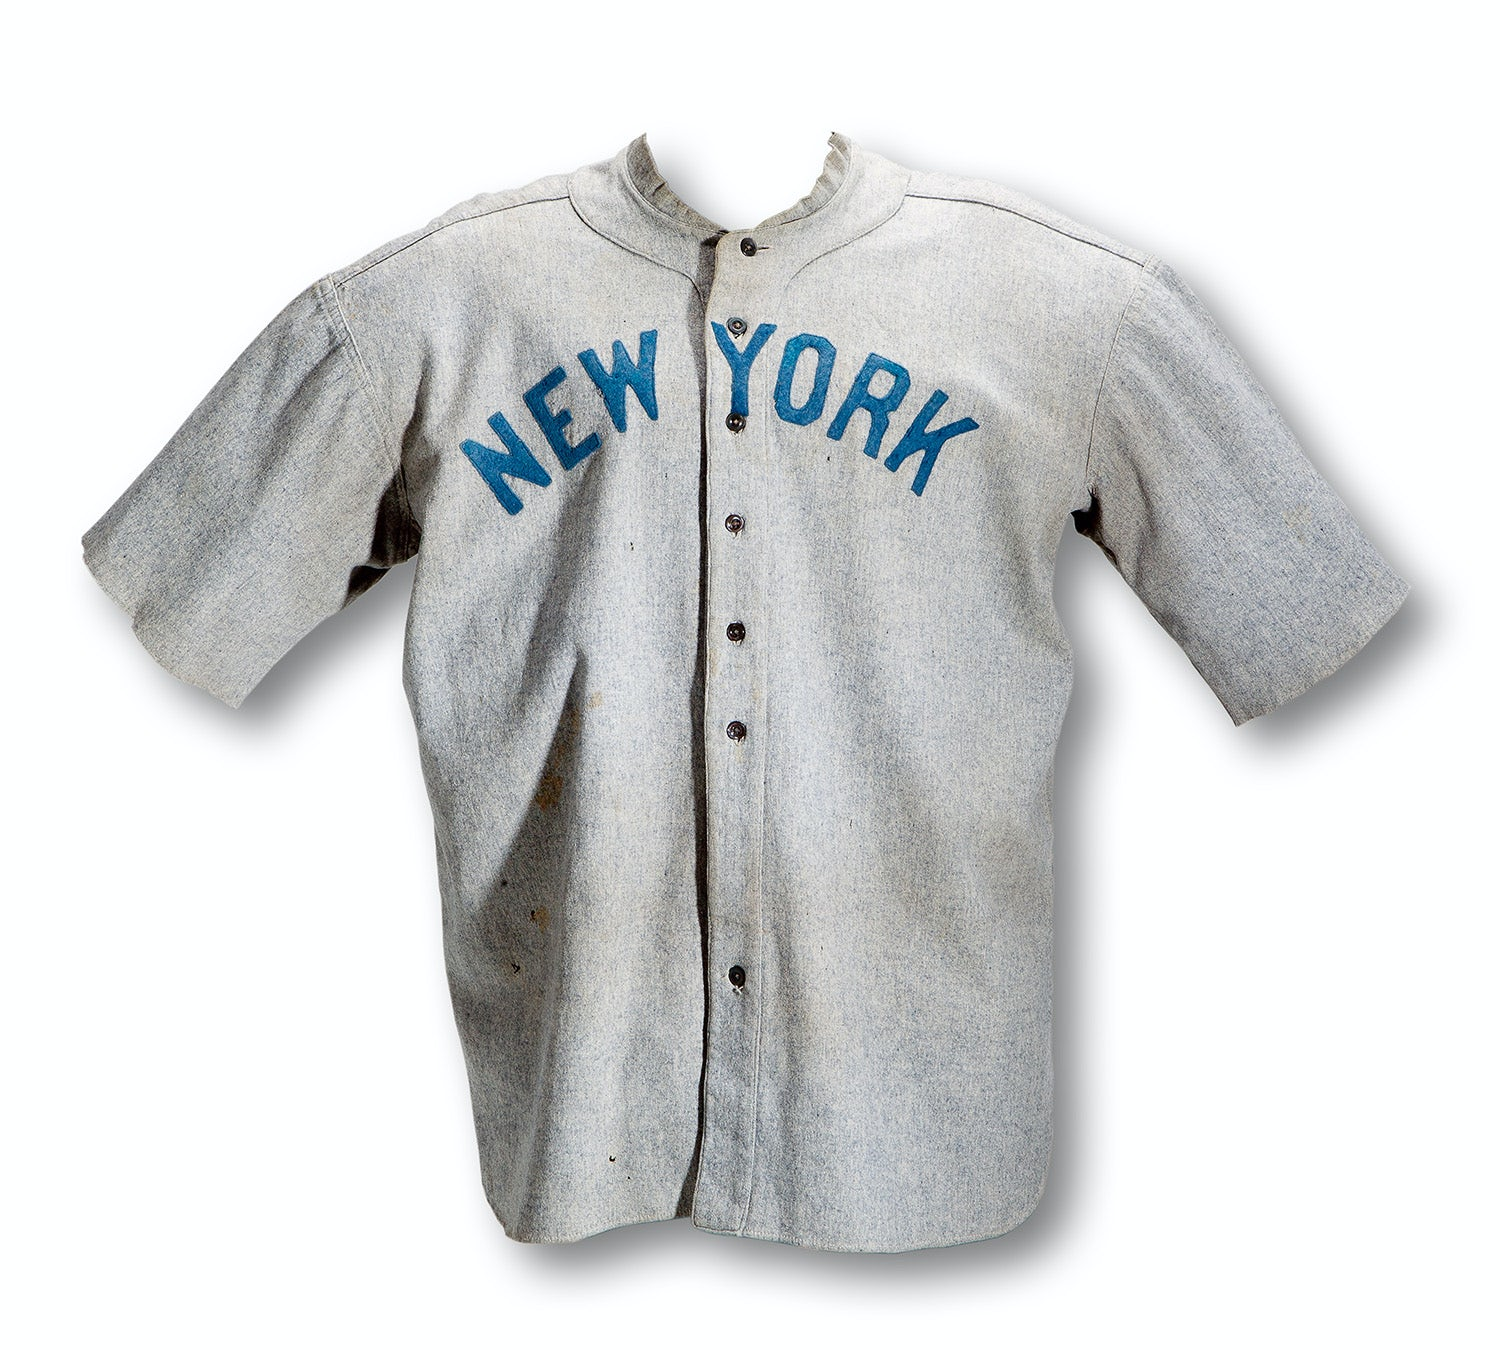 ruthjersey 1920 scpauctions